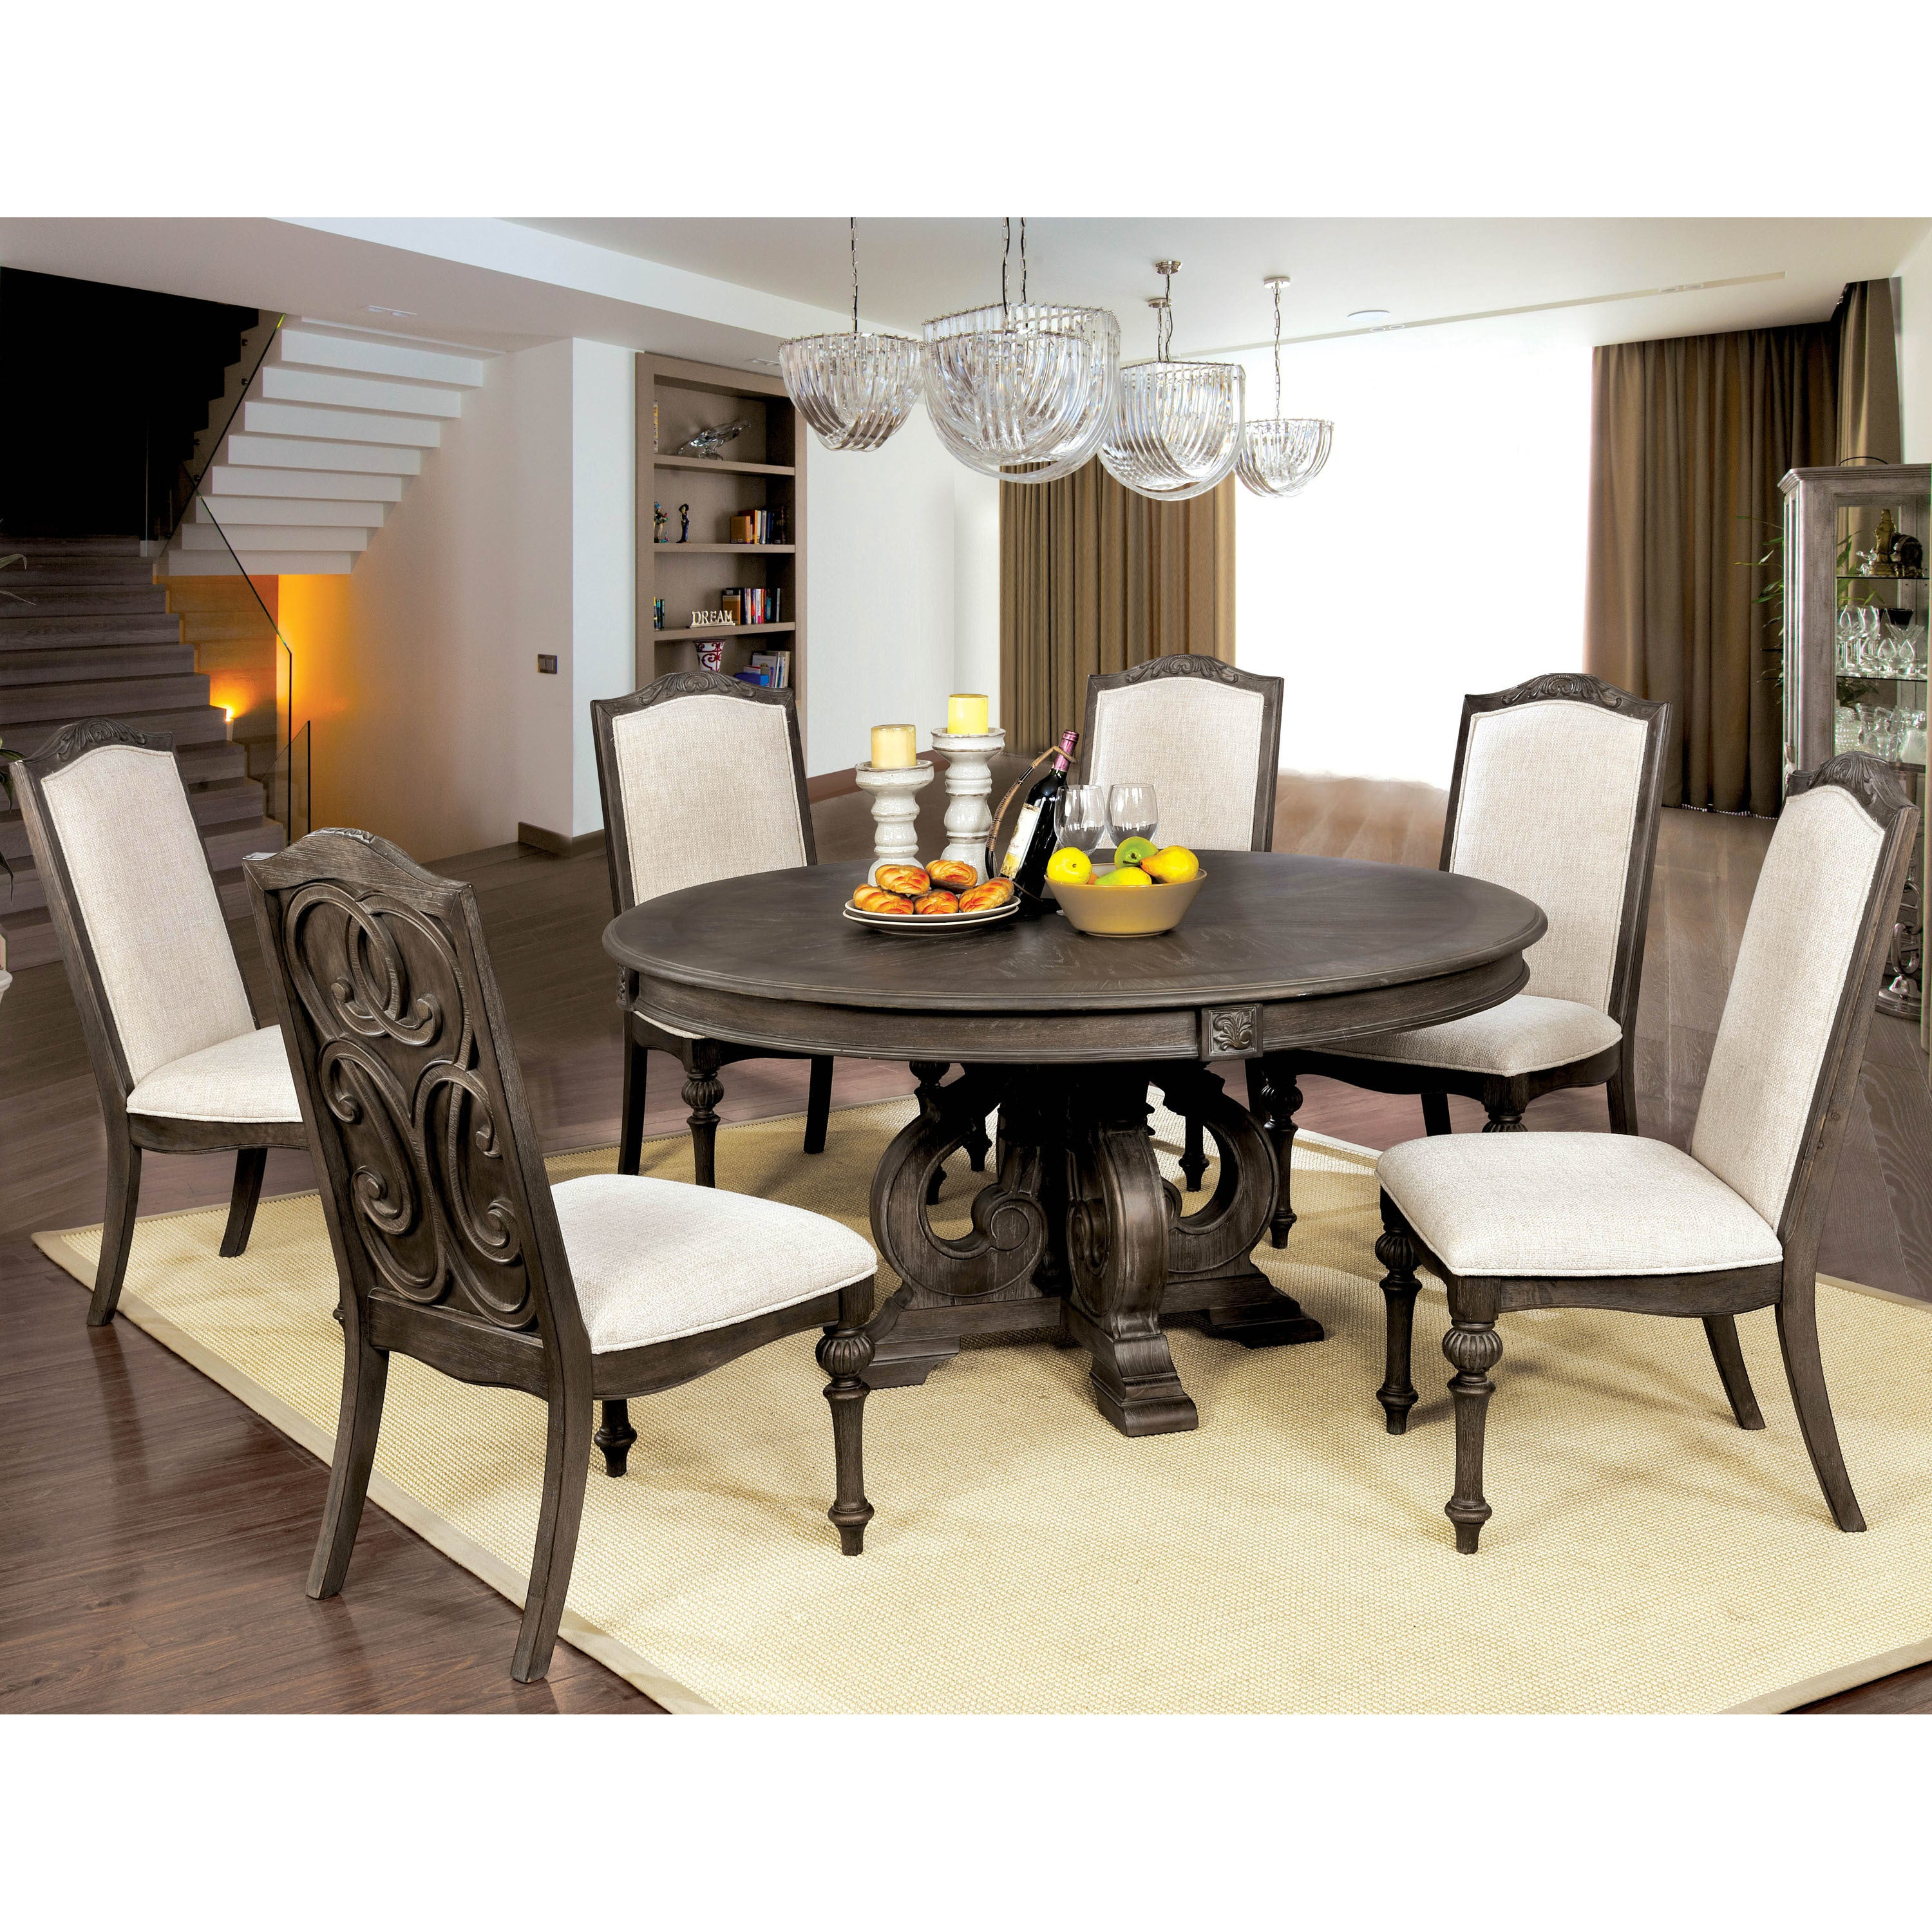 Furniture of America Leland Rustic 60 inch Round Dining Table Free